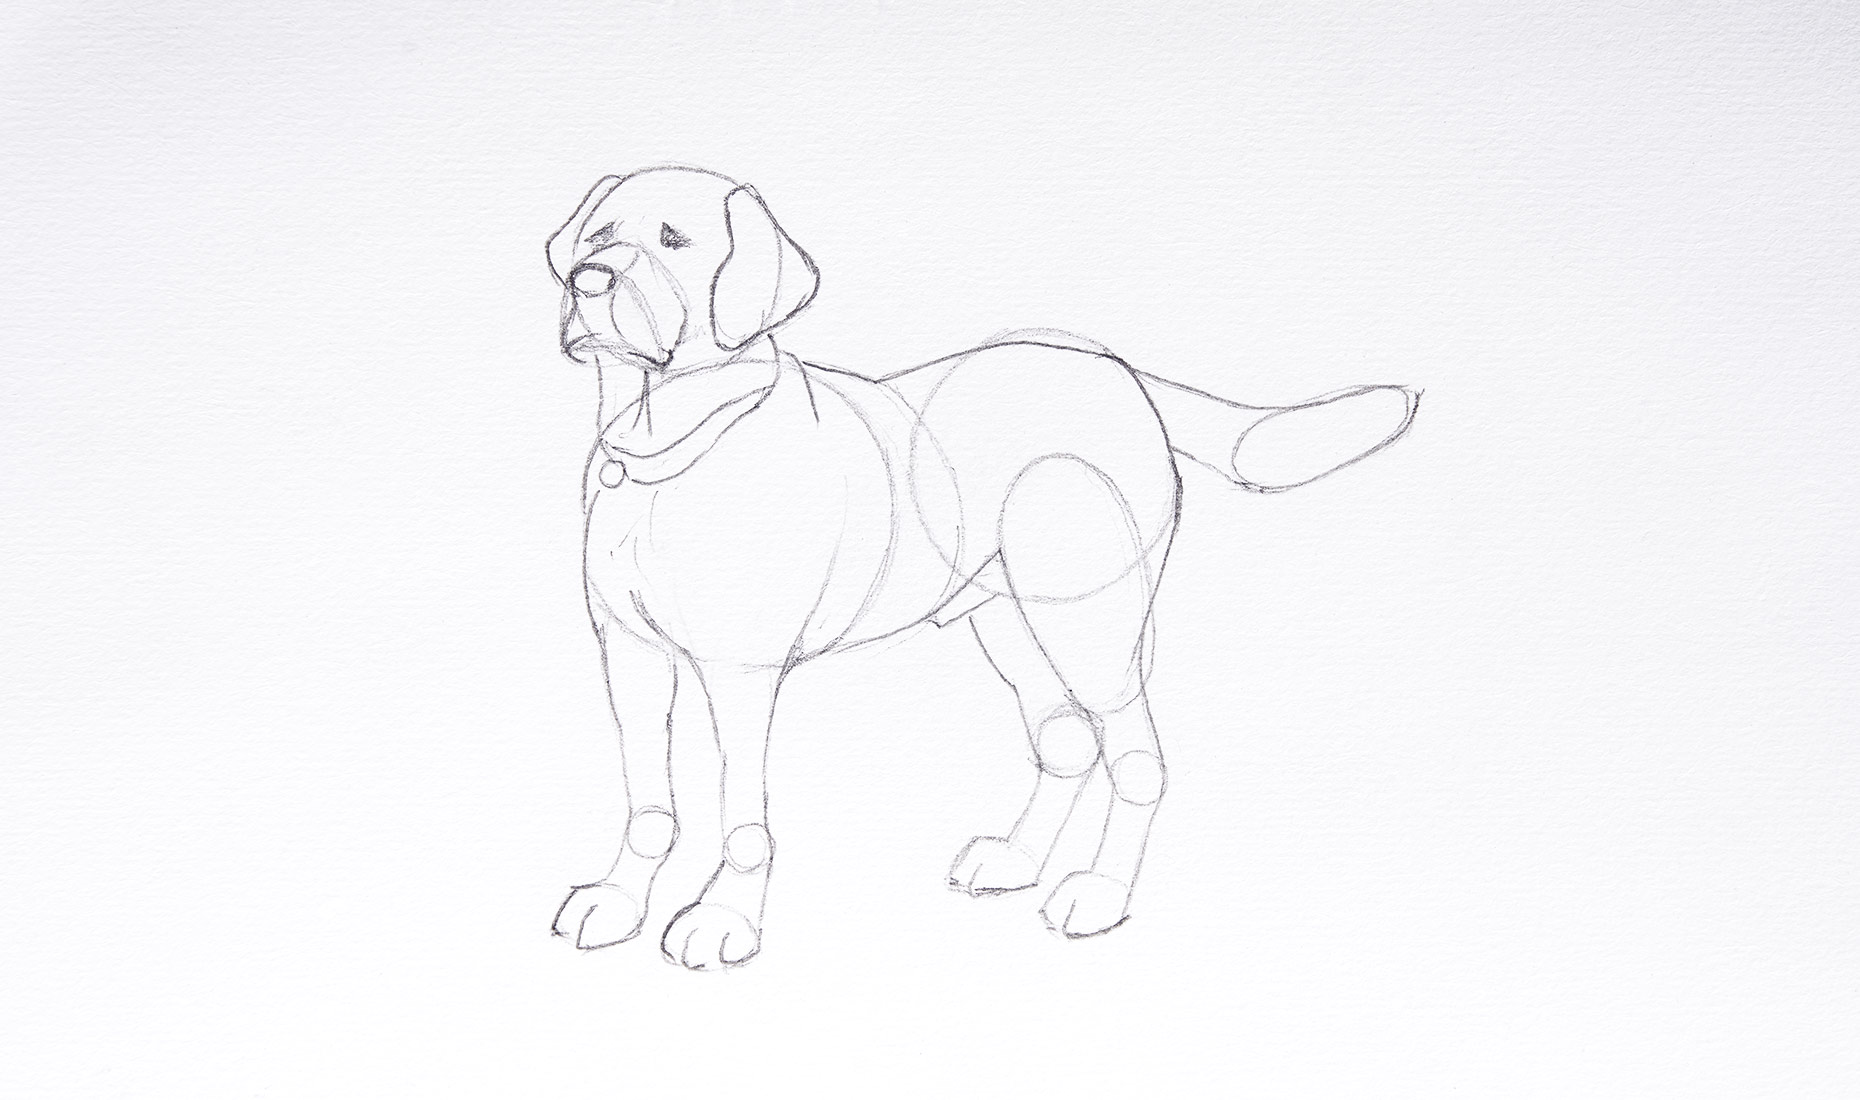 How to draw a dog easy - Step 3